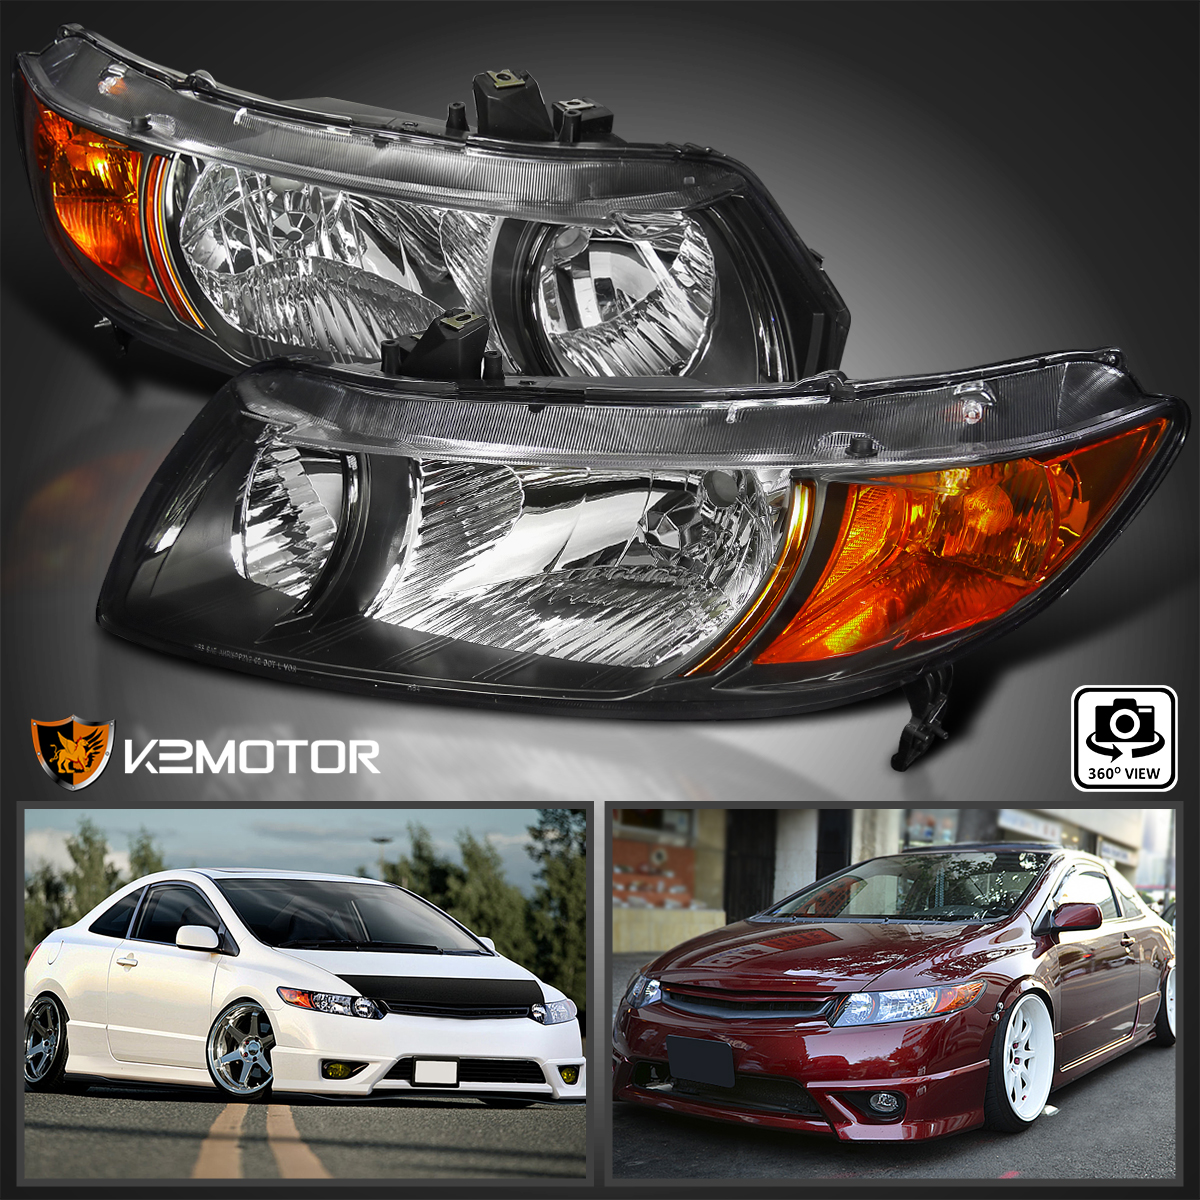 2006 2011 For Honda Civic Coupe 2Dr Headlights Head Lamps JDM Black  Left+Right